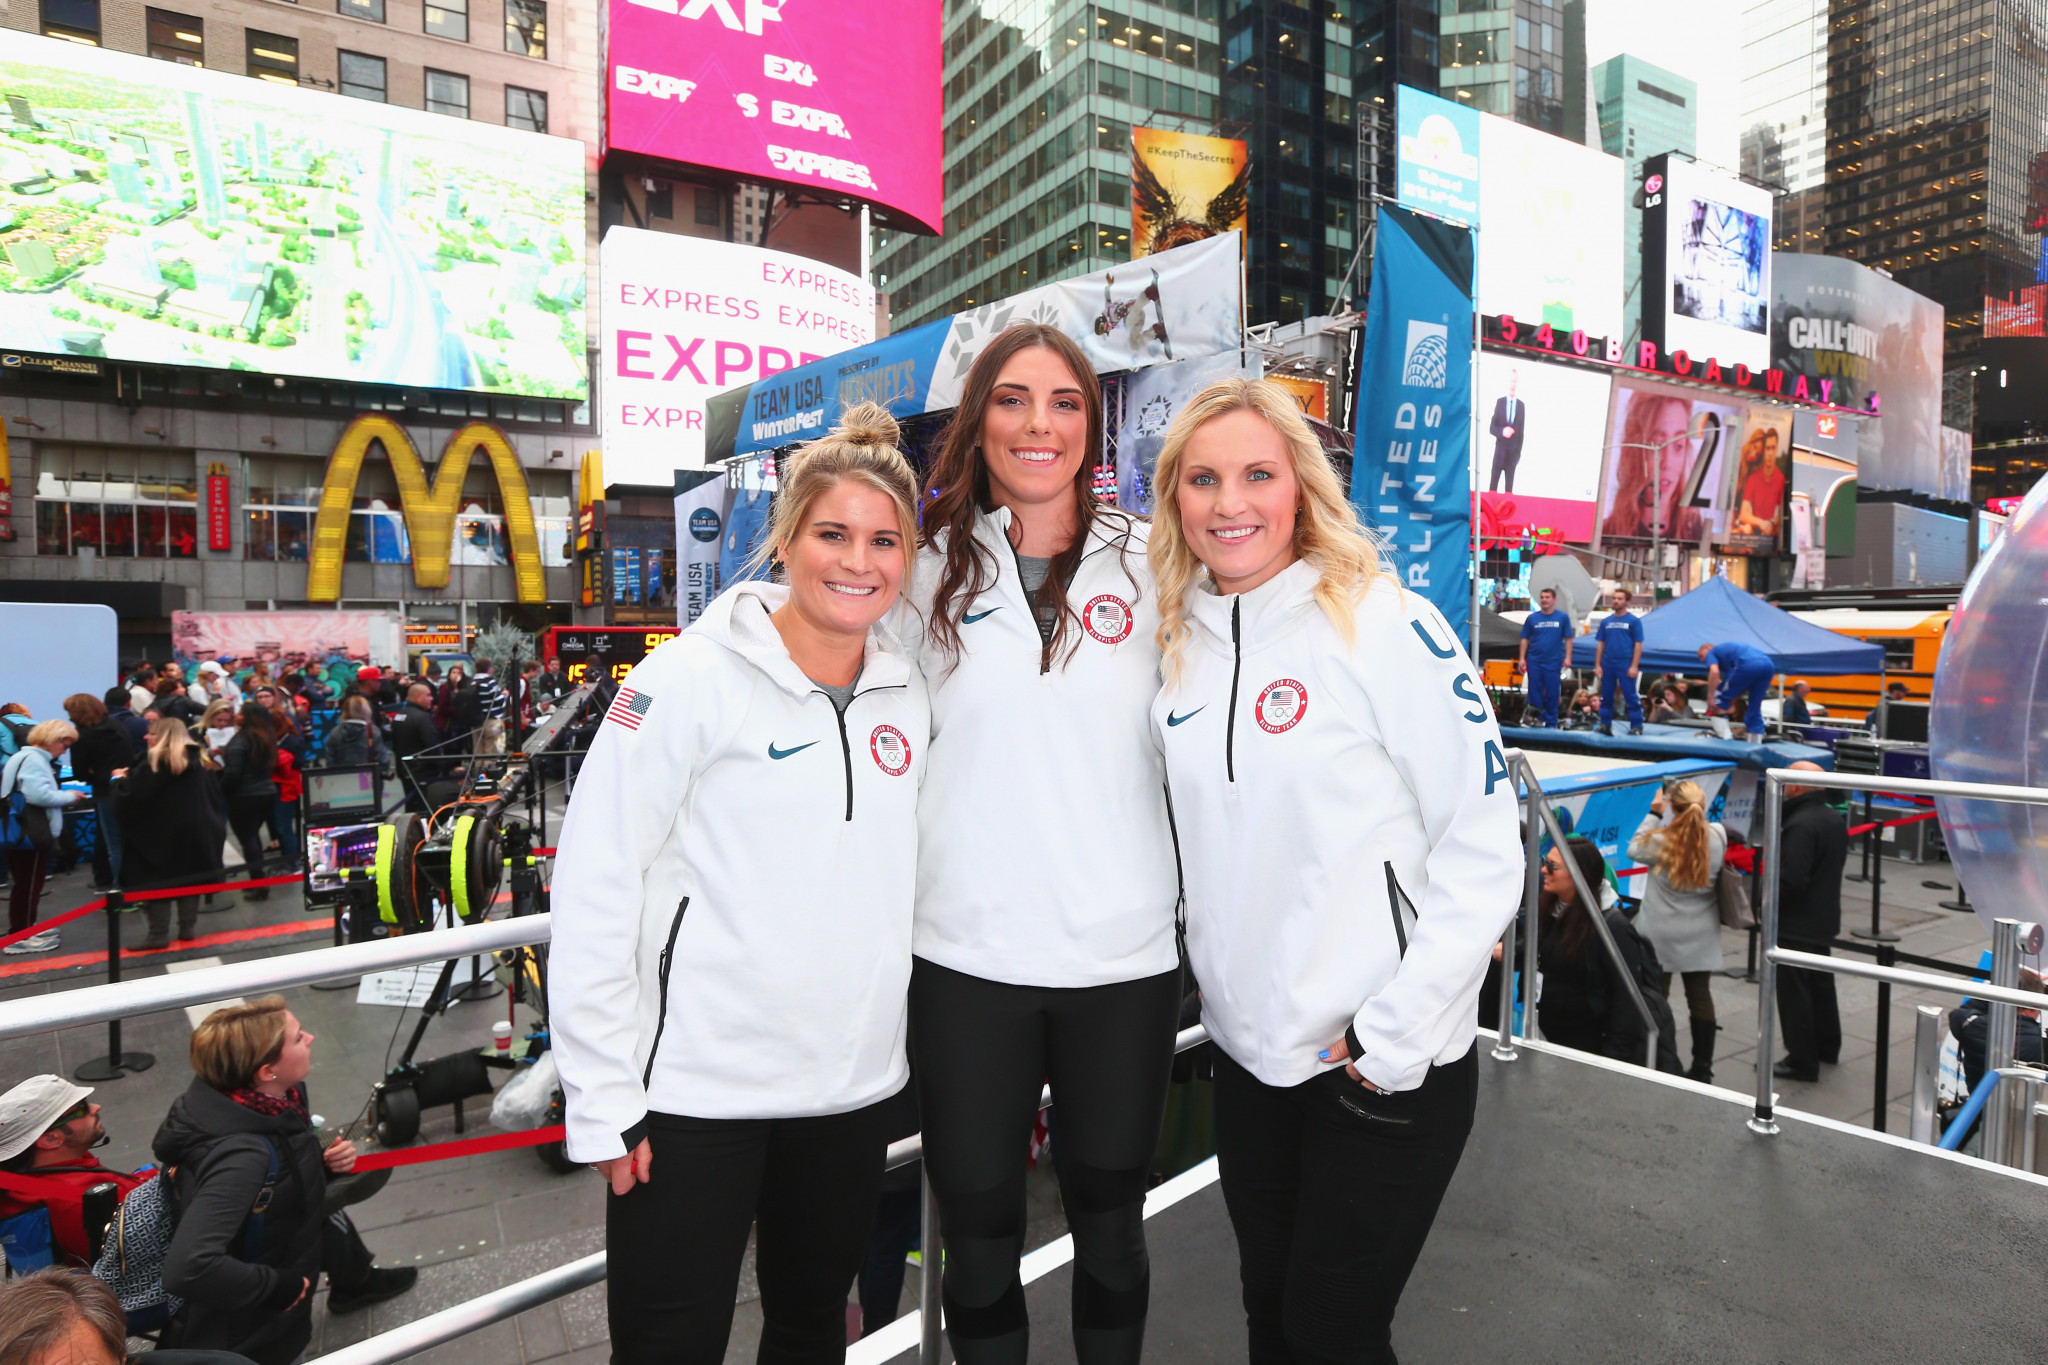 Team USA's women's ice hockey players Brianna Decker, Hilary Knight and Jocelyne Lamoureux-Davidson attend the 100 Days Out 2018 PyeongChang Winter Olympics Celebration in Times Square, New York City ©Getty Images